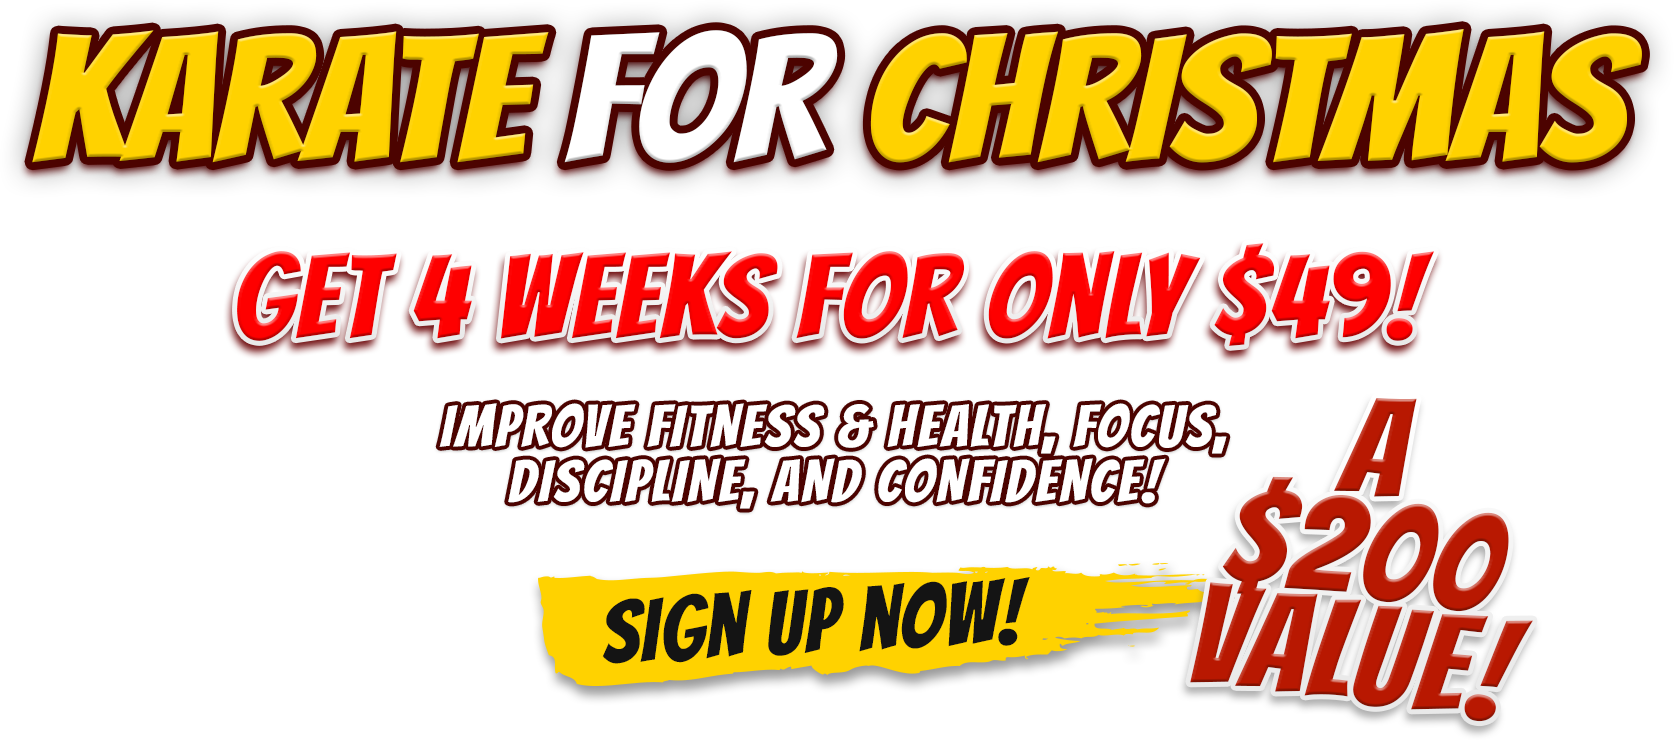 Karate For Christmas. Get 4 Weeks for only $49! Improve Fitness & Health, Focus, Discipline, and Condifence!